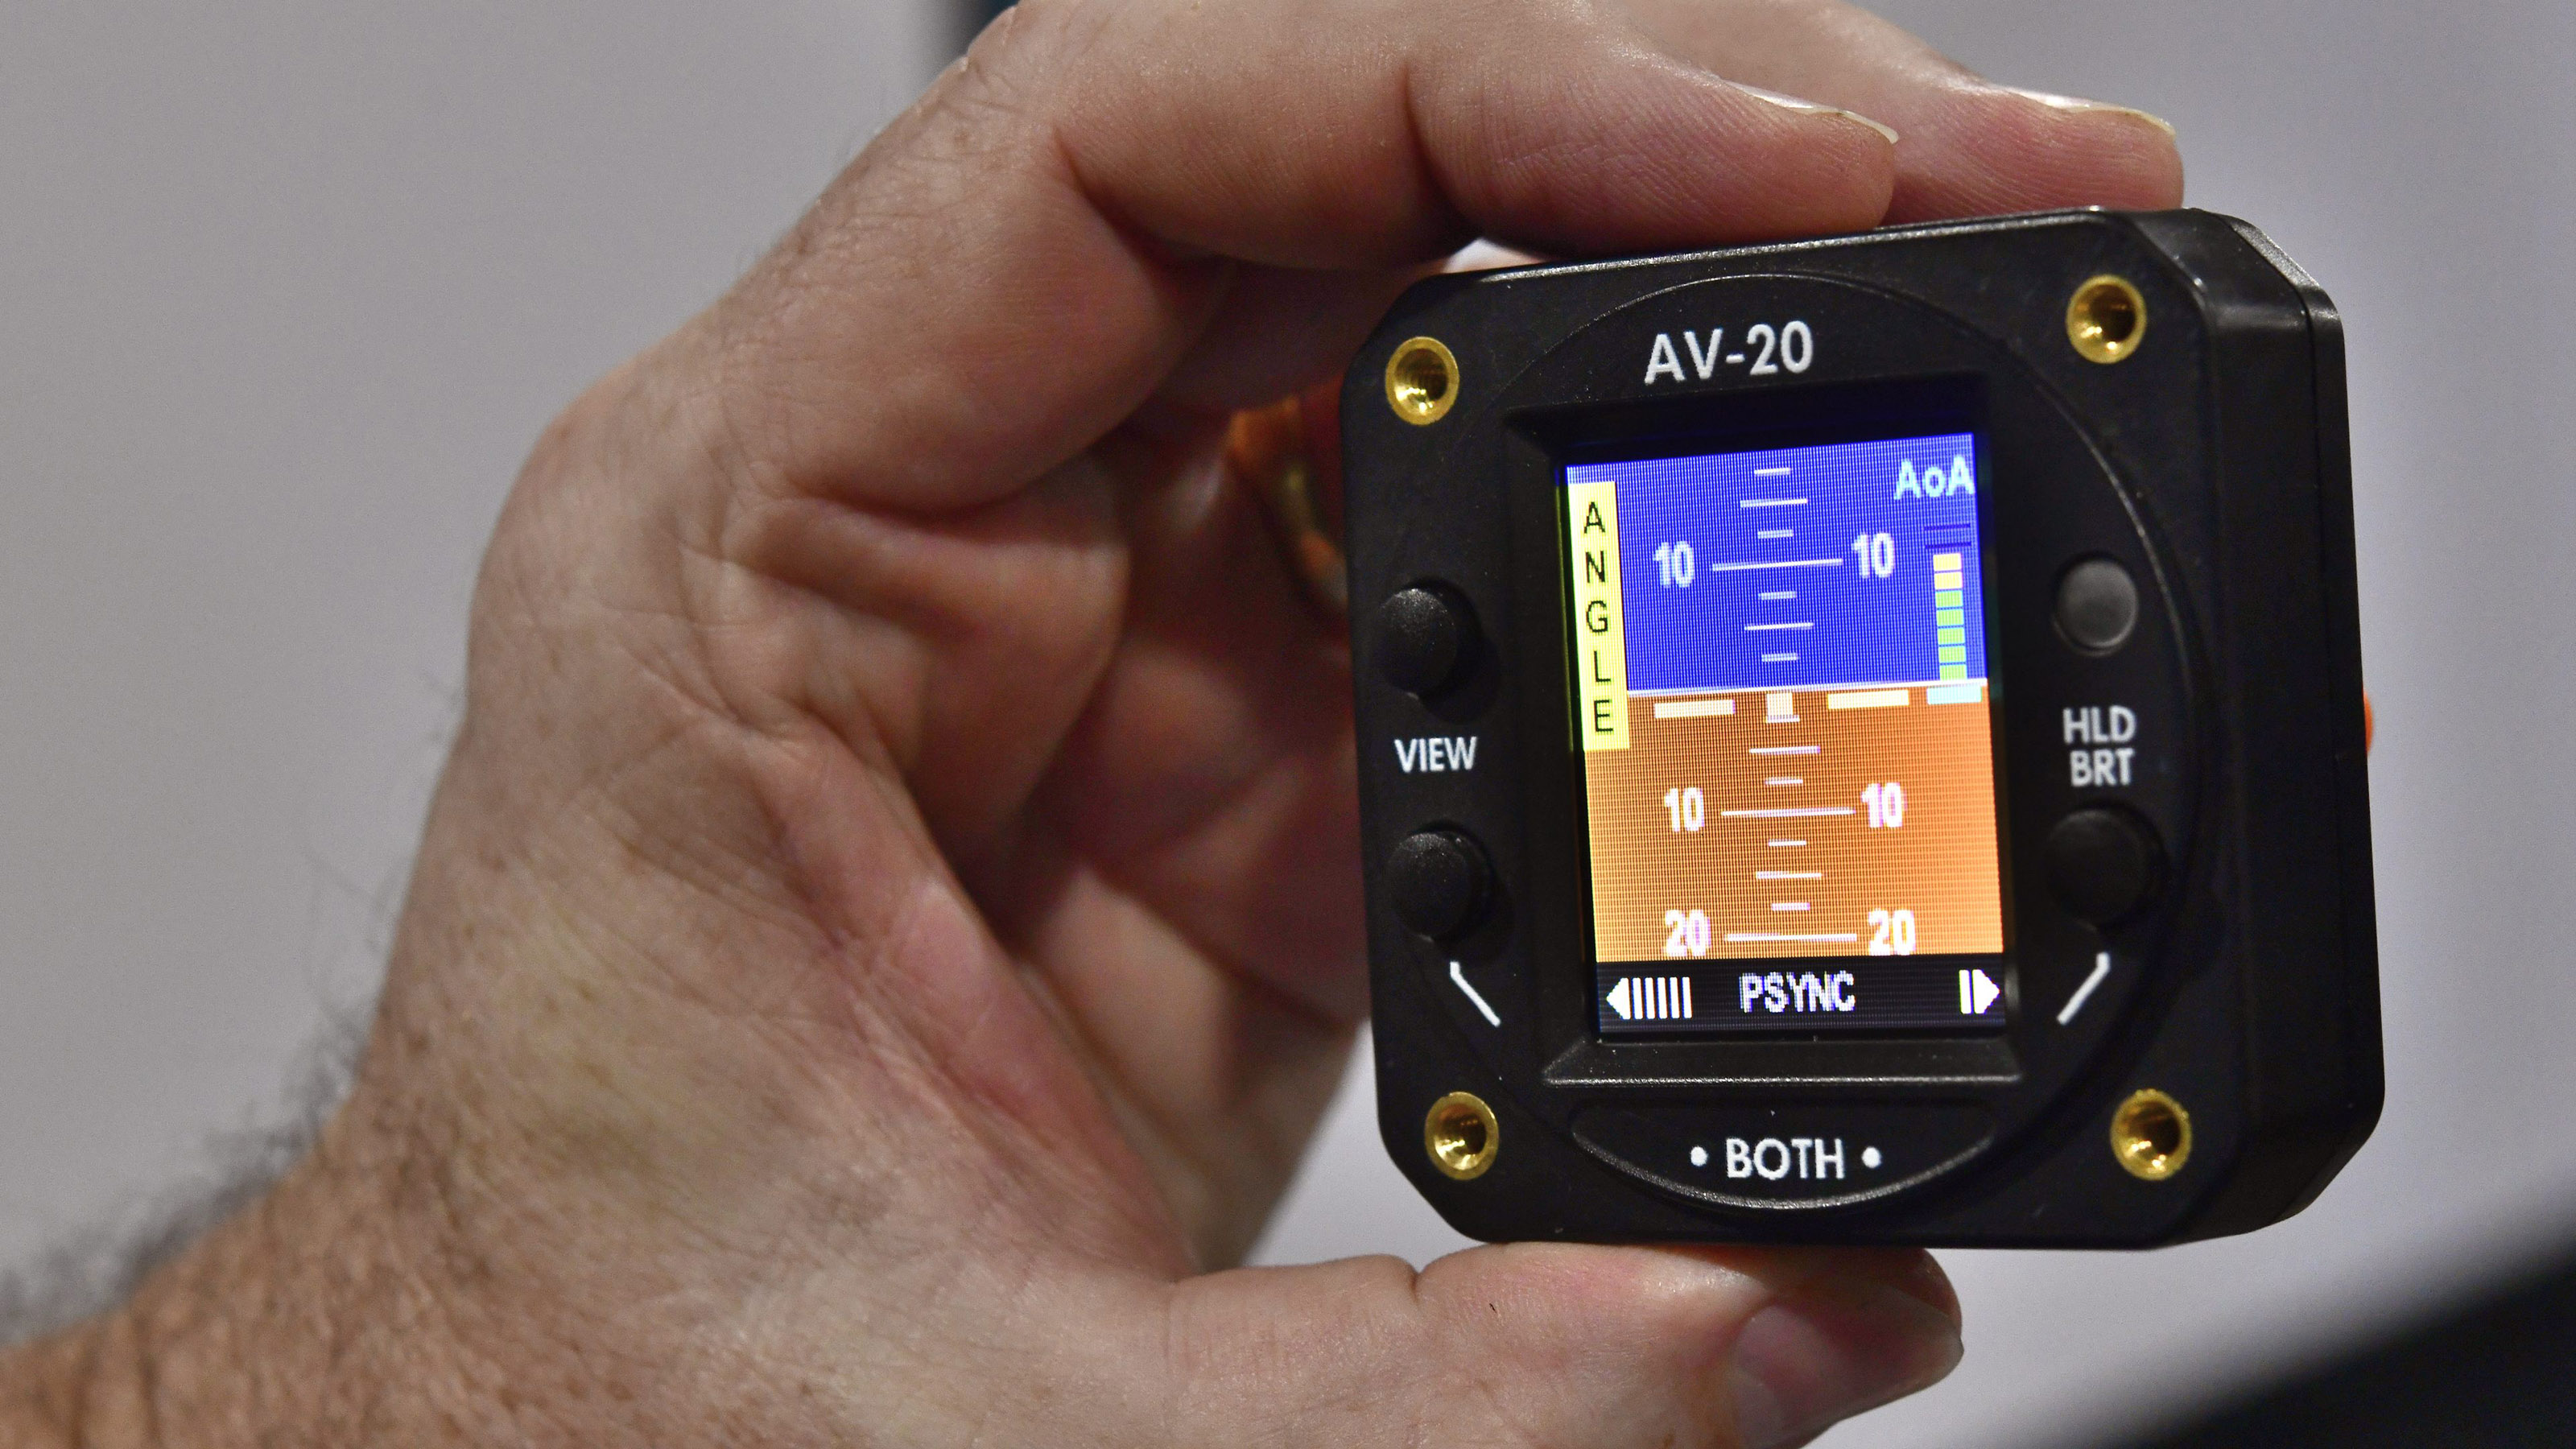 FAA NORSEE certification is pending for AeroVonics' AV-20-S, a two-inch-diameter, self-contained multifunction display with integral angle of attack and other capabilities. The company displayed it at EAA AirVenture 2018. Photo by Mike Collins.